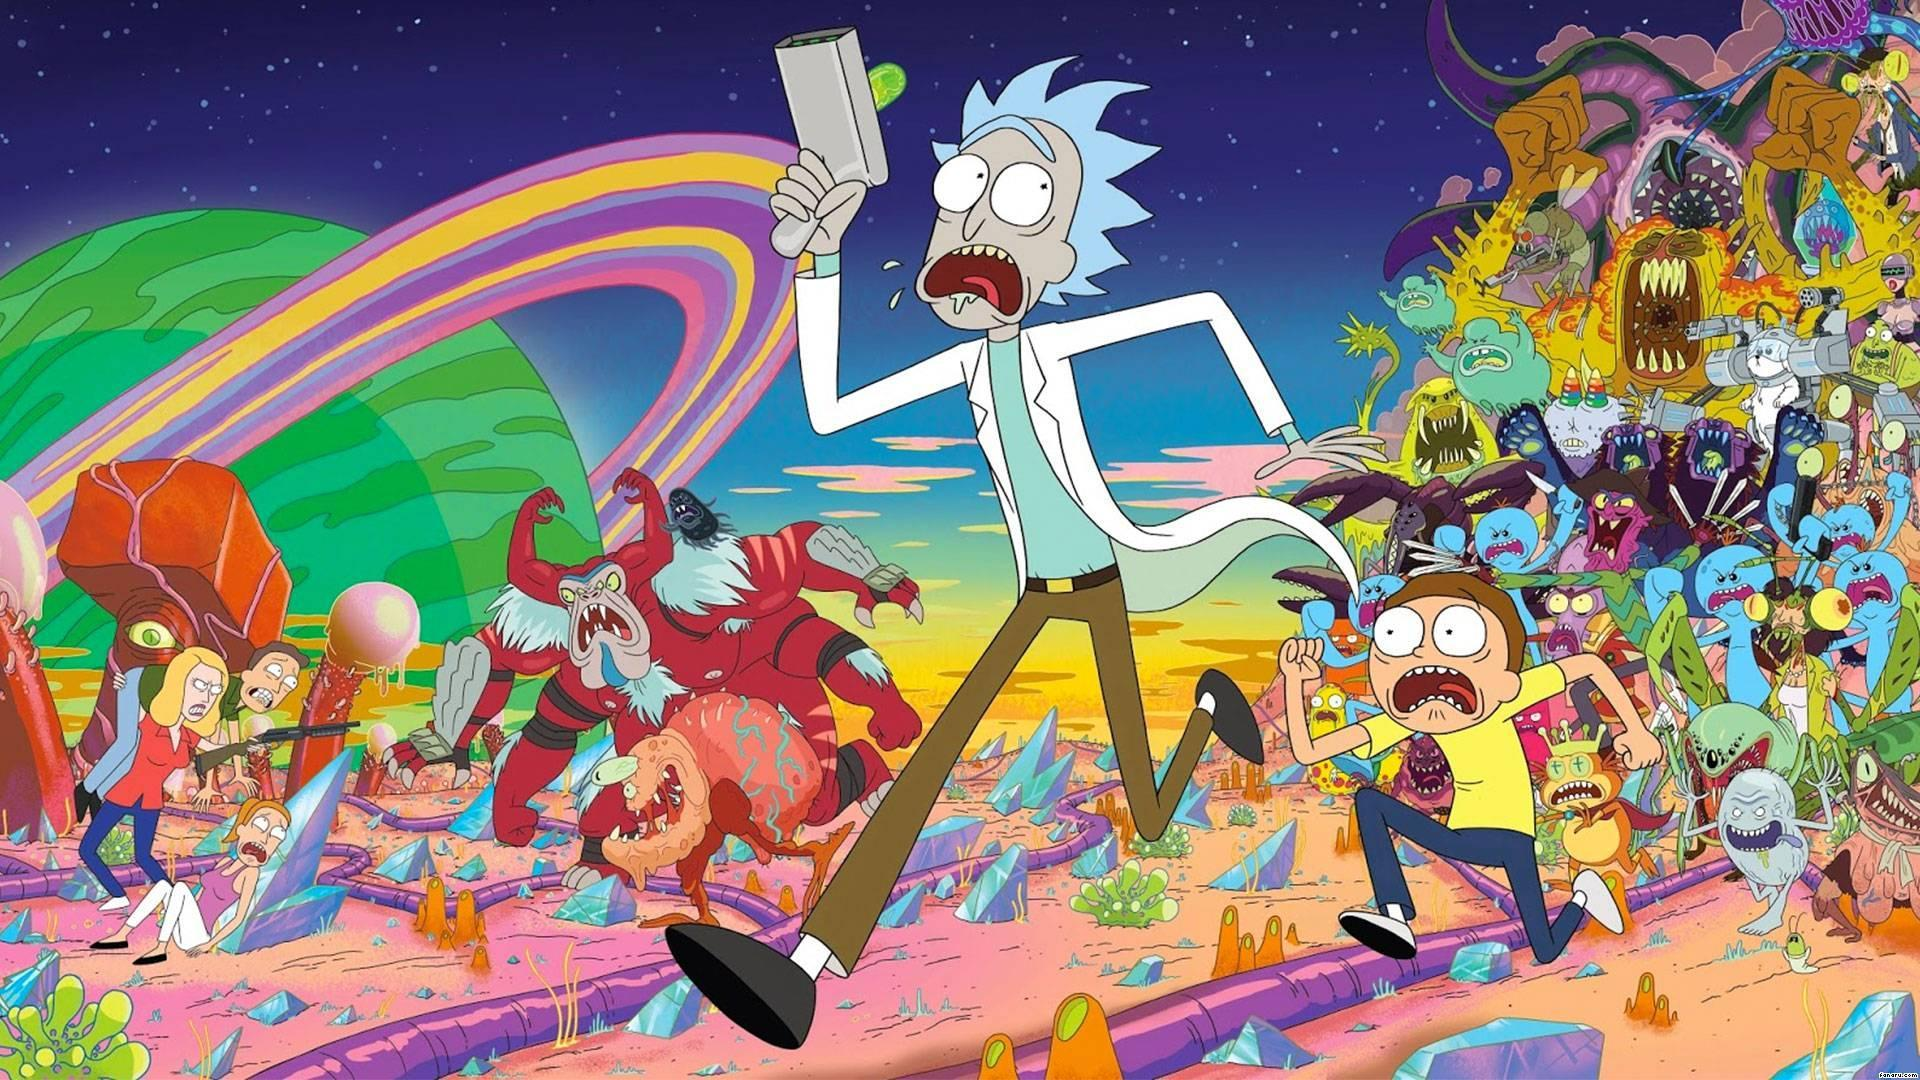 Rick and Morty charitable background character offer